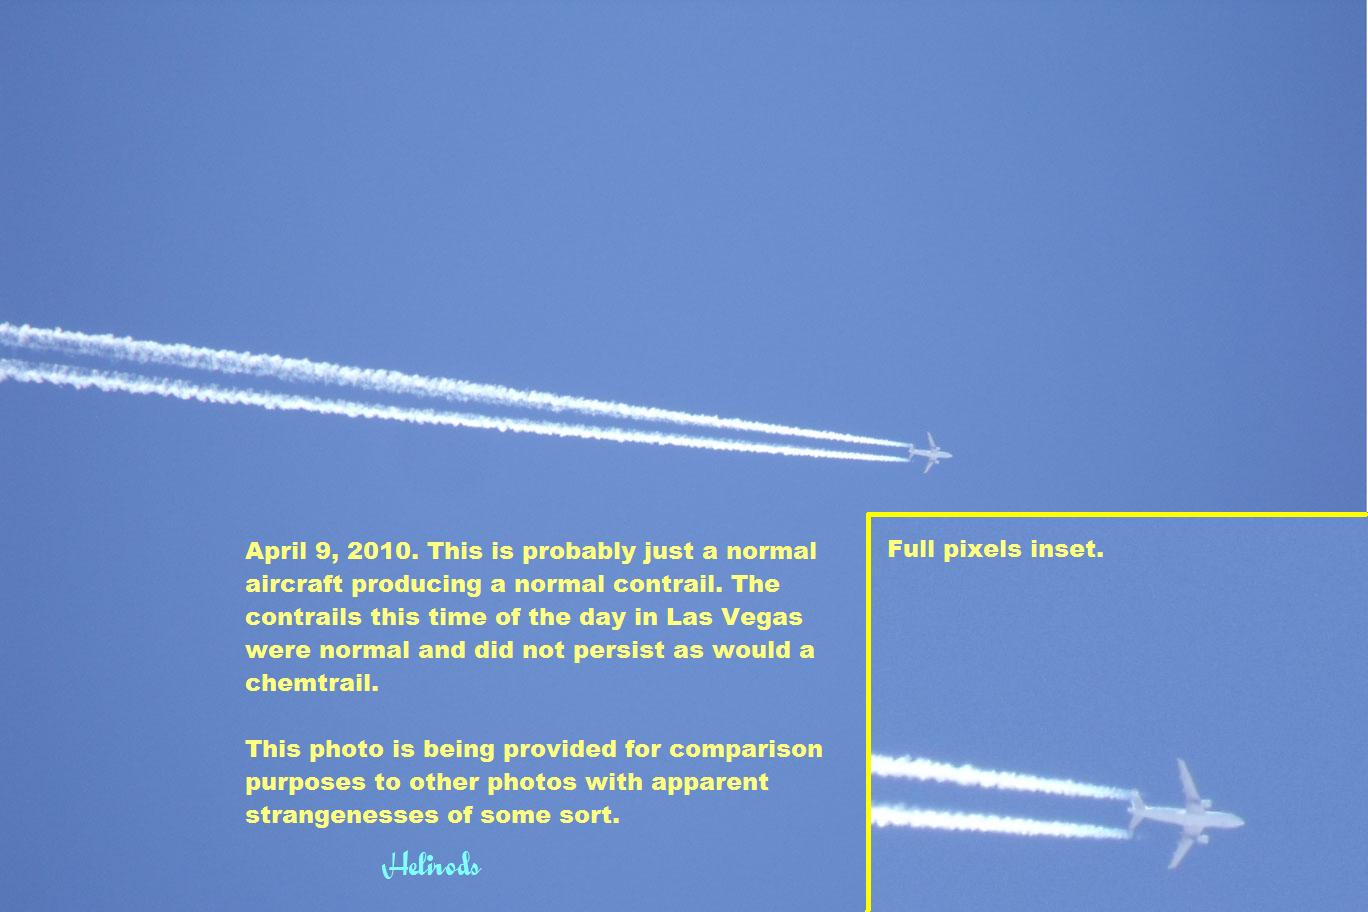 A typical contrail